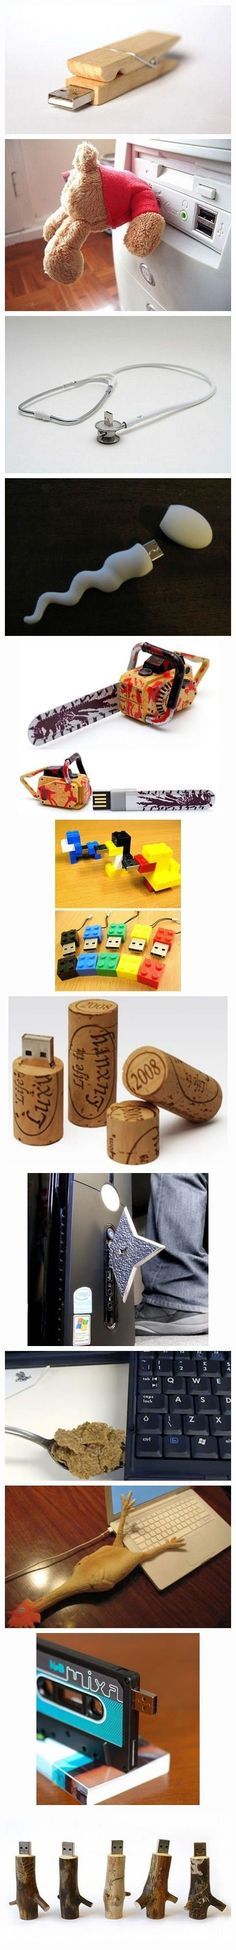 More! Creative USB flash drives - people really come up with some funny stuff!